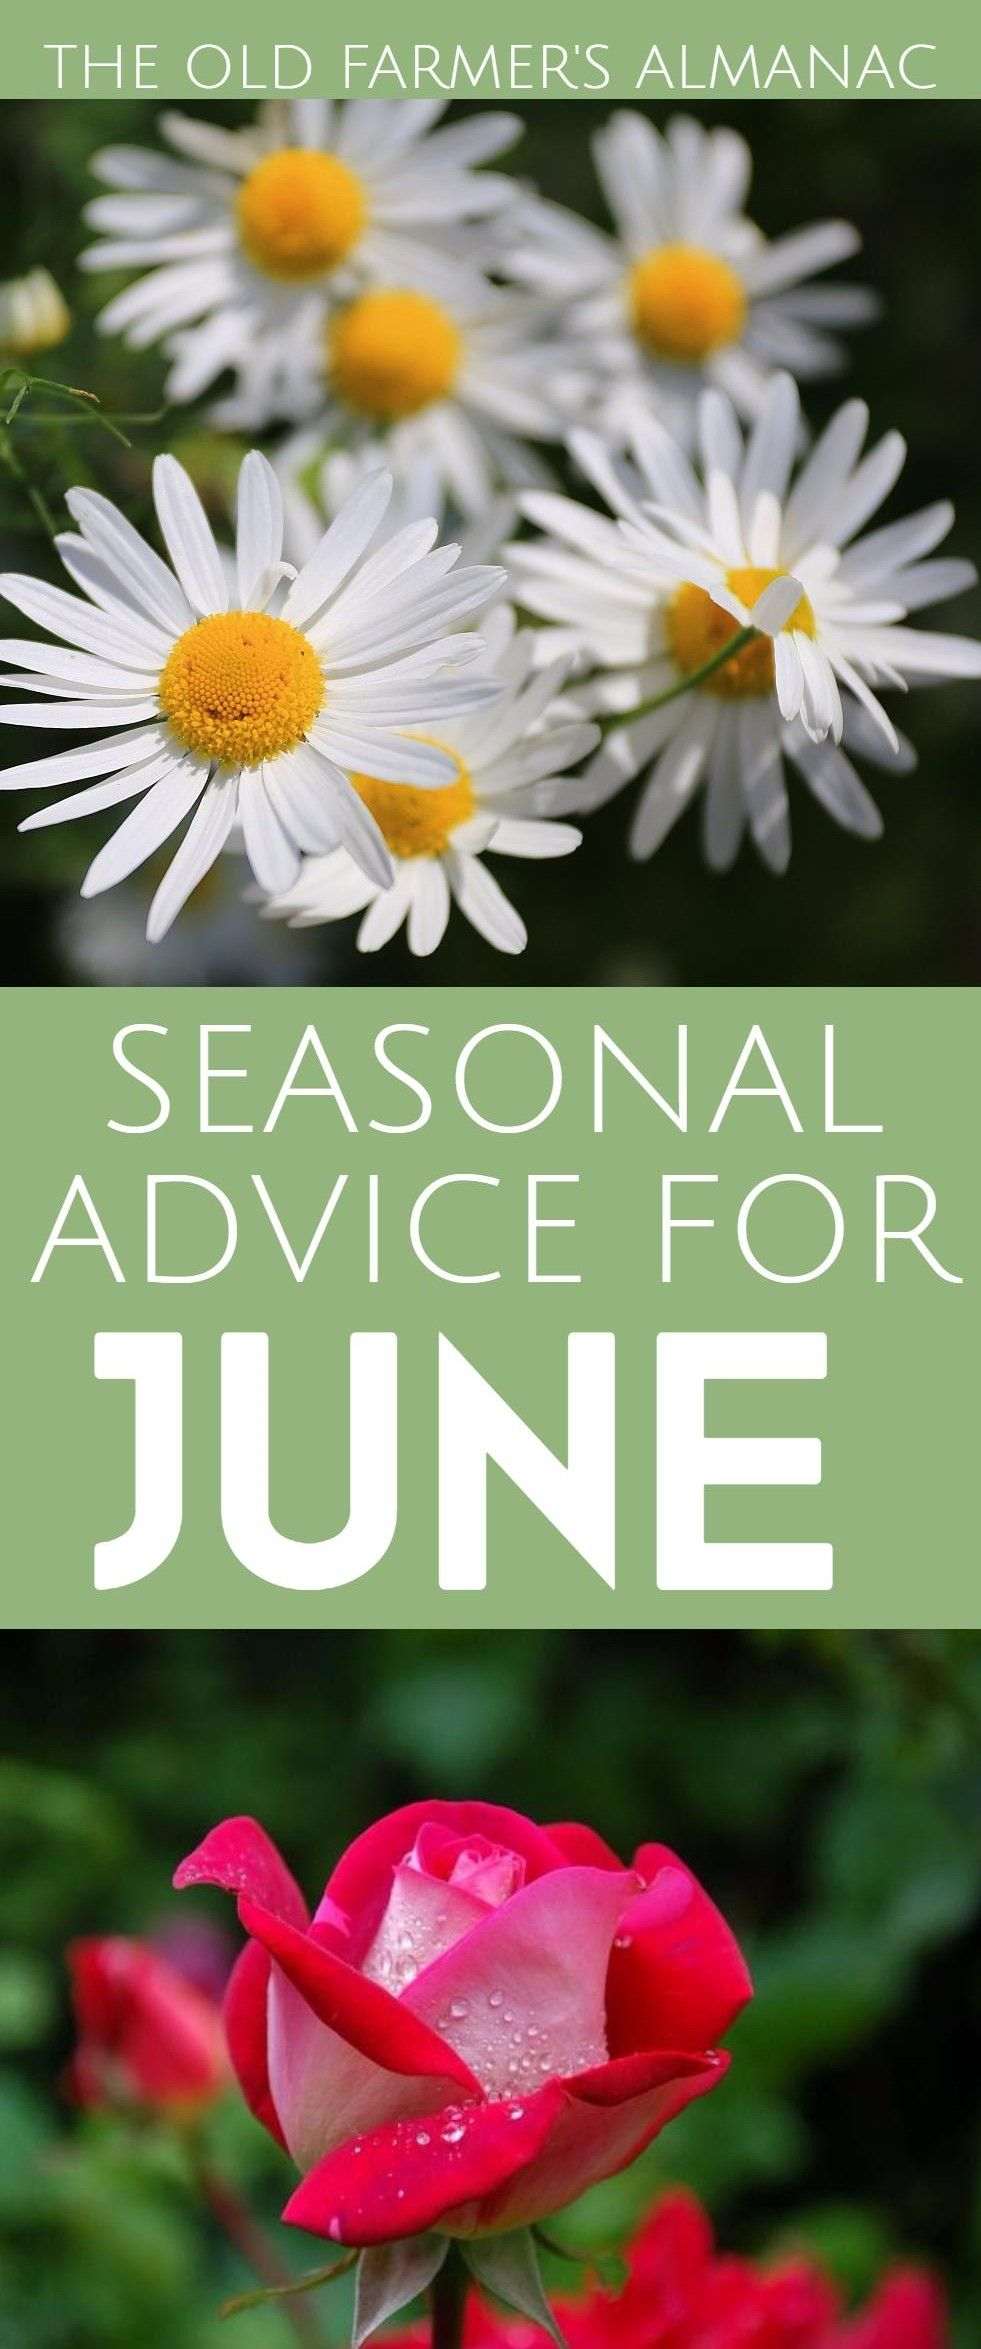 The Month Of June 2017: Holidays, Fun Facts, Folklore